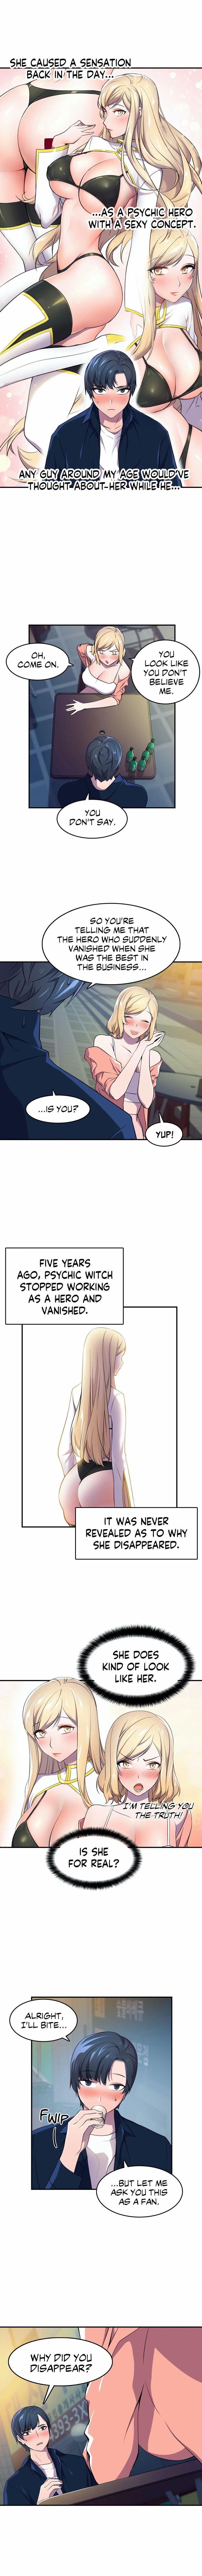 HERO MANAGER Ch. 1-11 23